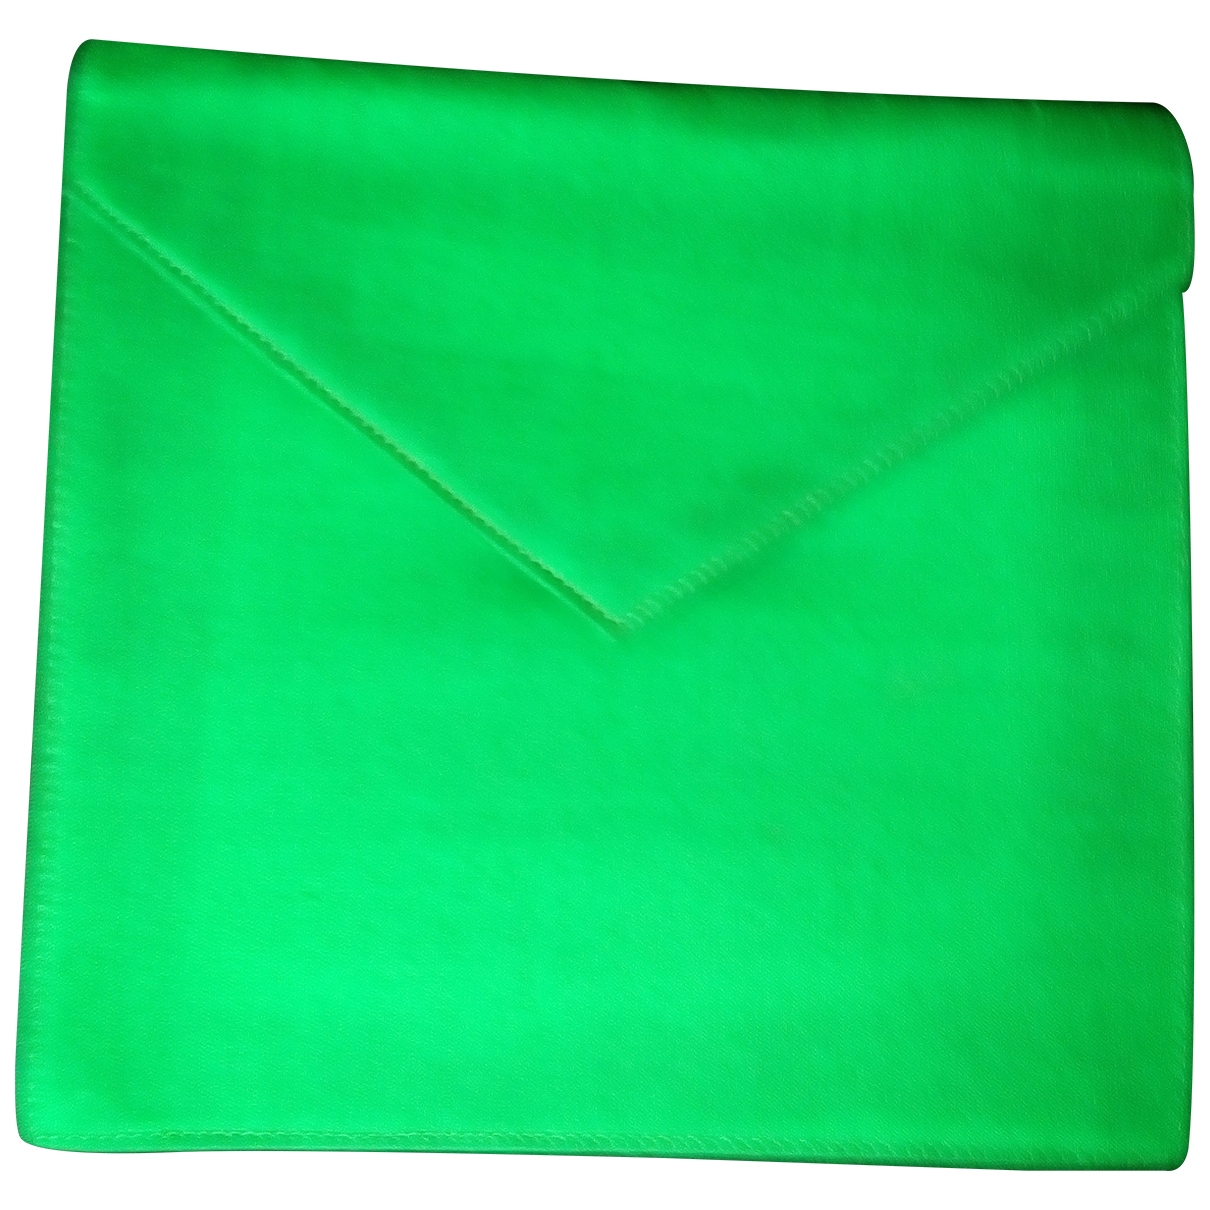 Gianni Versace \N Green Clutch bag for Women \N